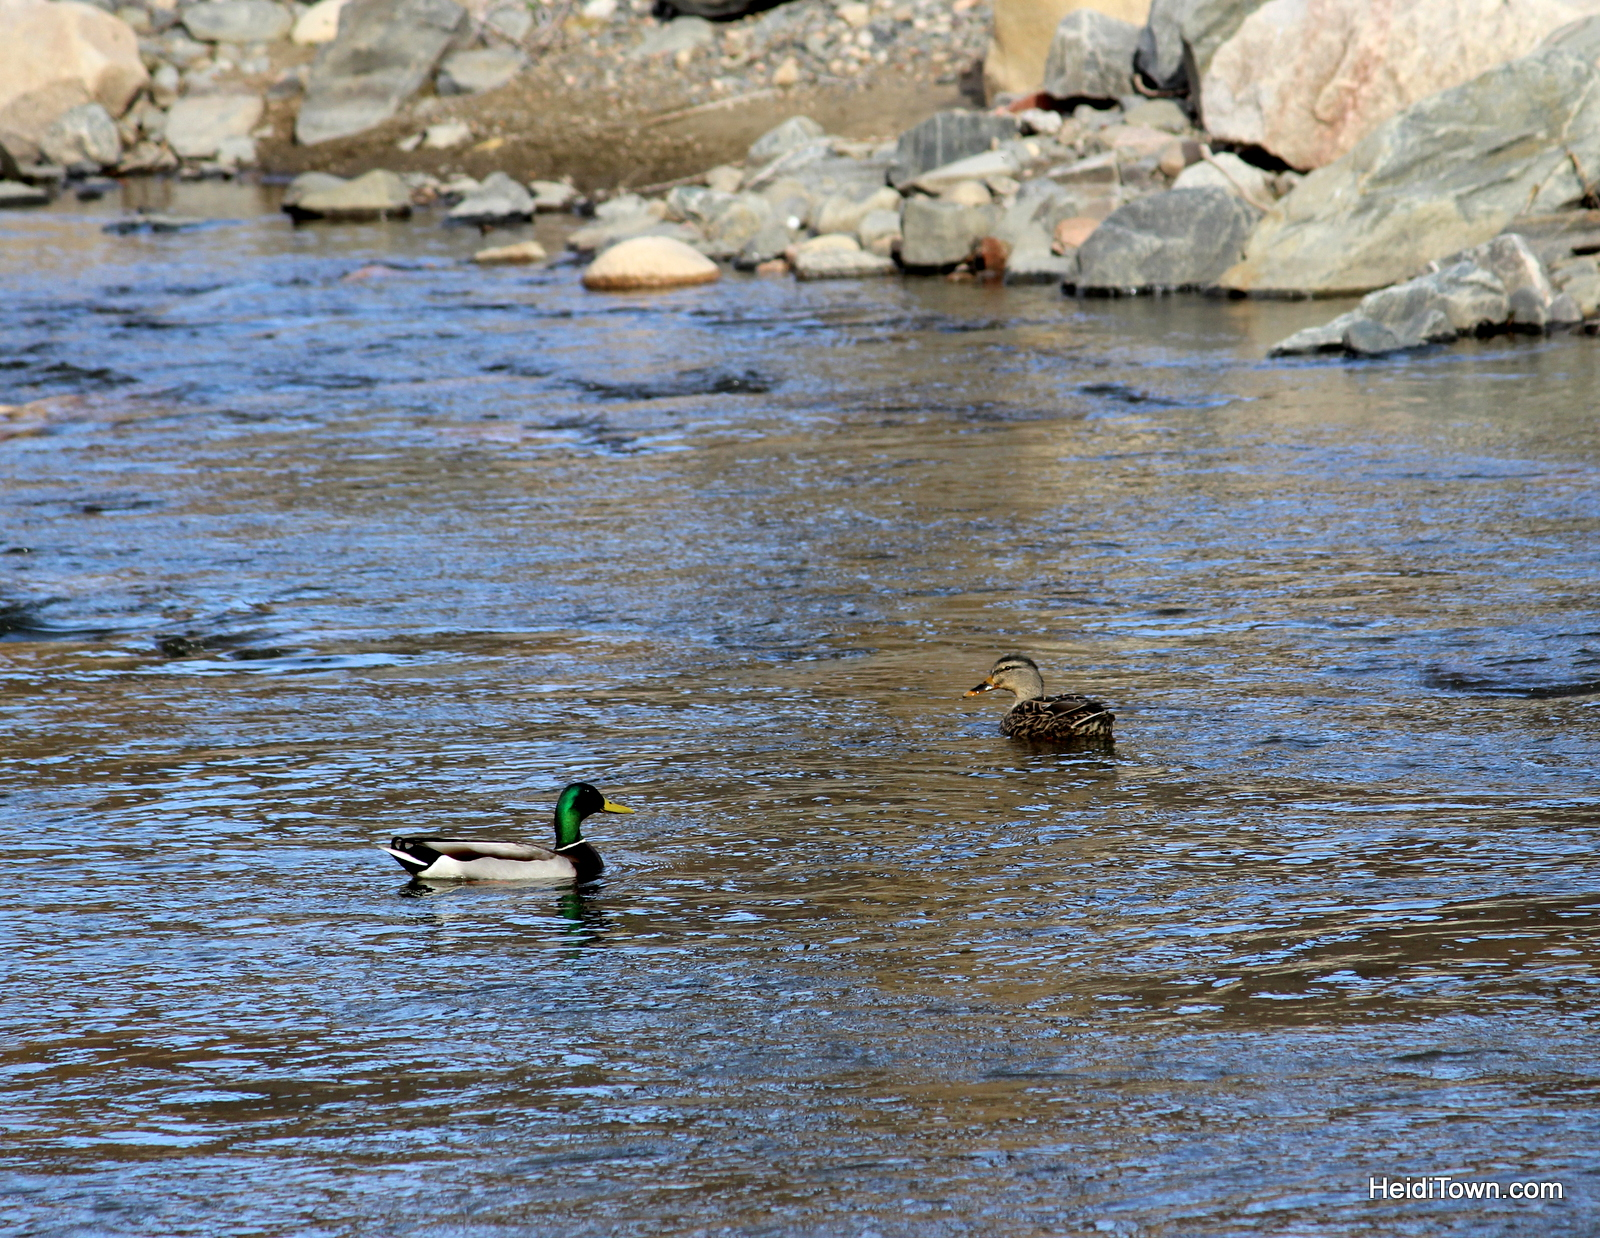 Mallard Ducks on the Big Thompson River at Syvlan Dale Guest Ranch in Loveland Colorado. Nature Walk. HeidiTown.com